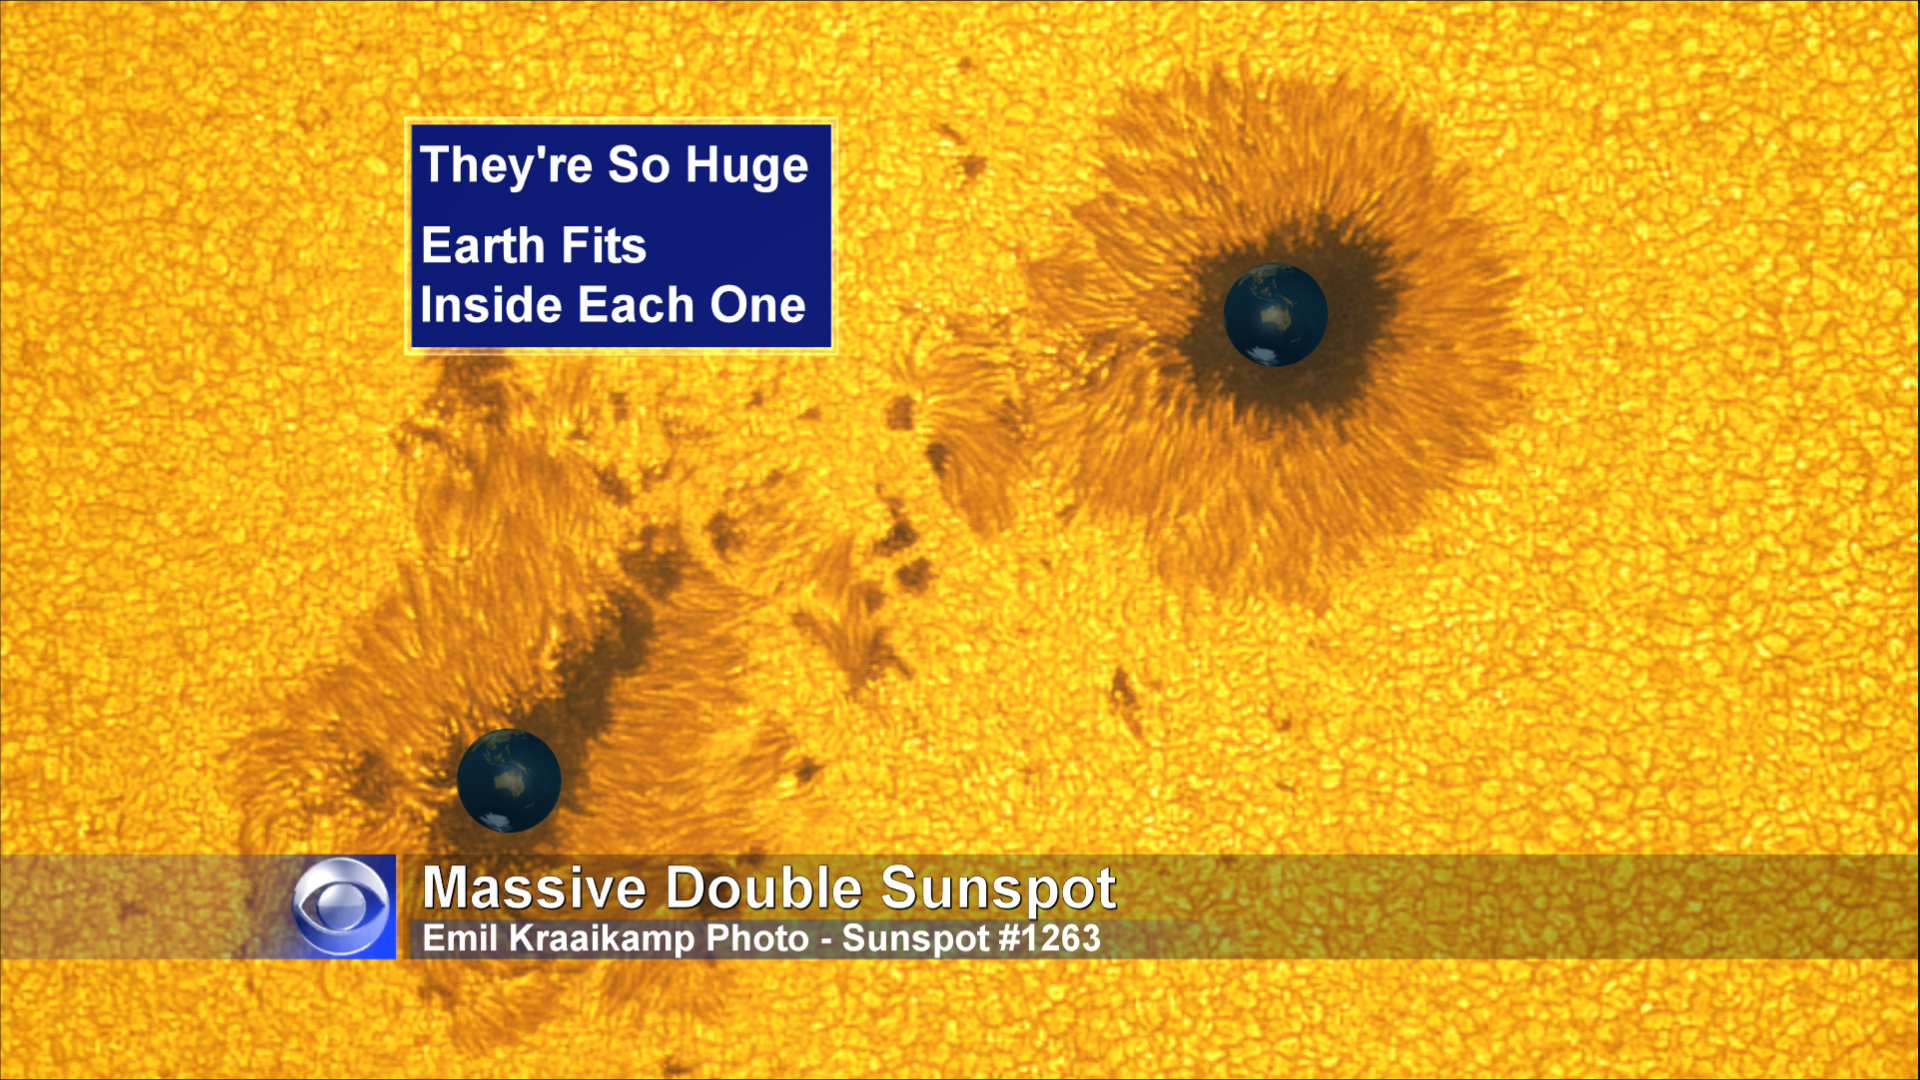 Sun Spots So Big, They Could Swallow The Earth